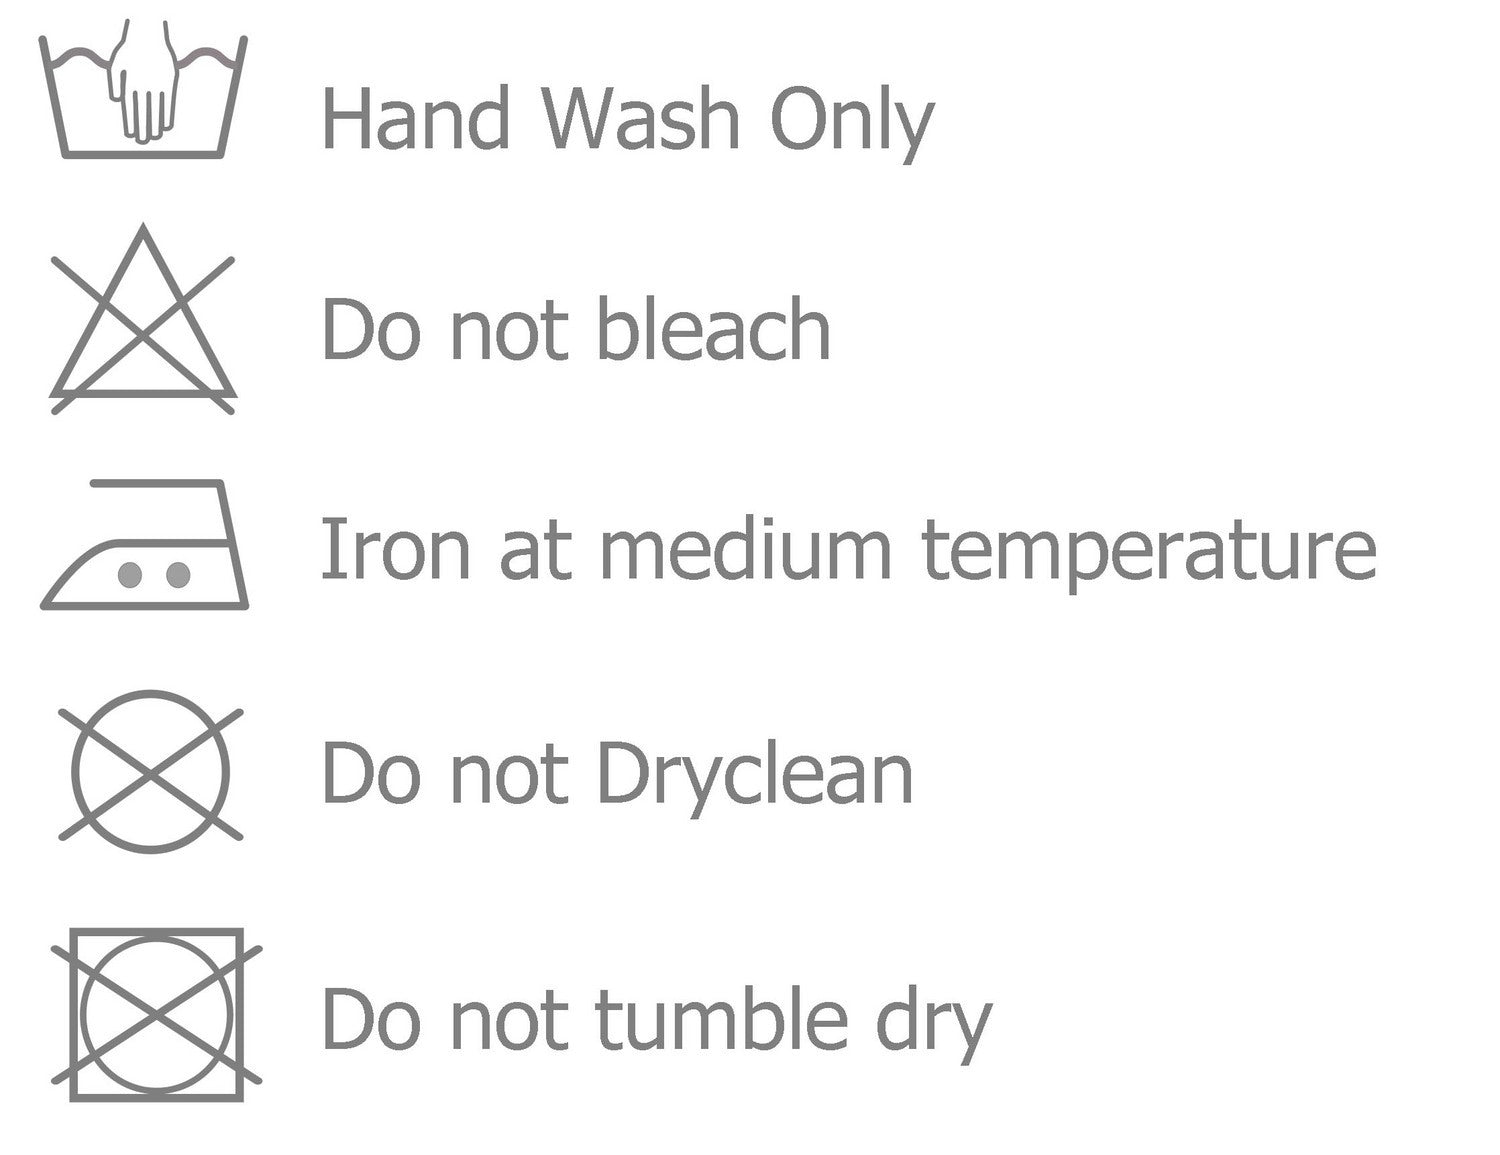 Placemat wash care guide 2.jpg